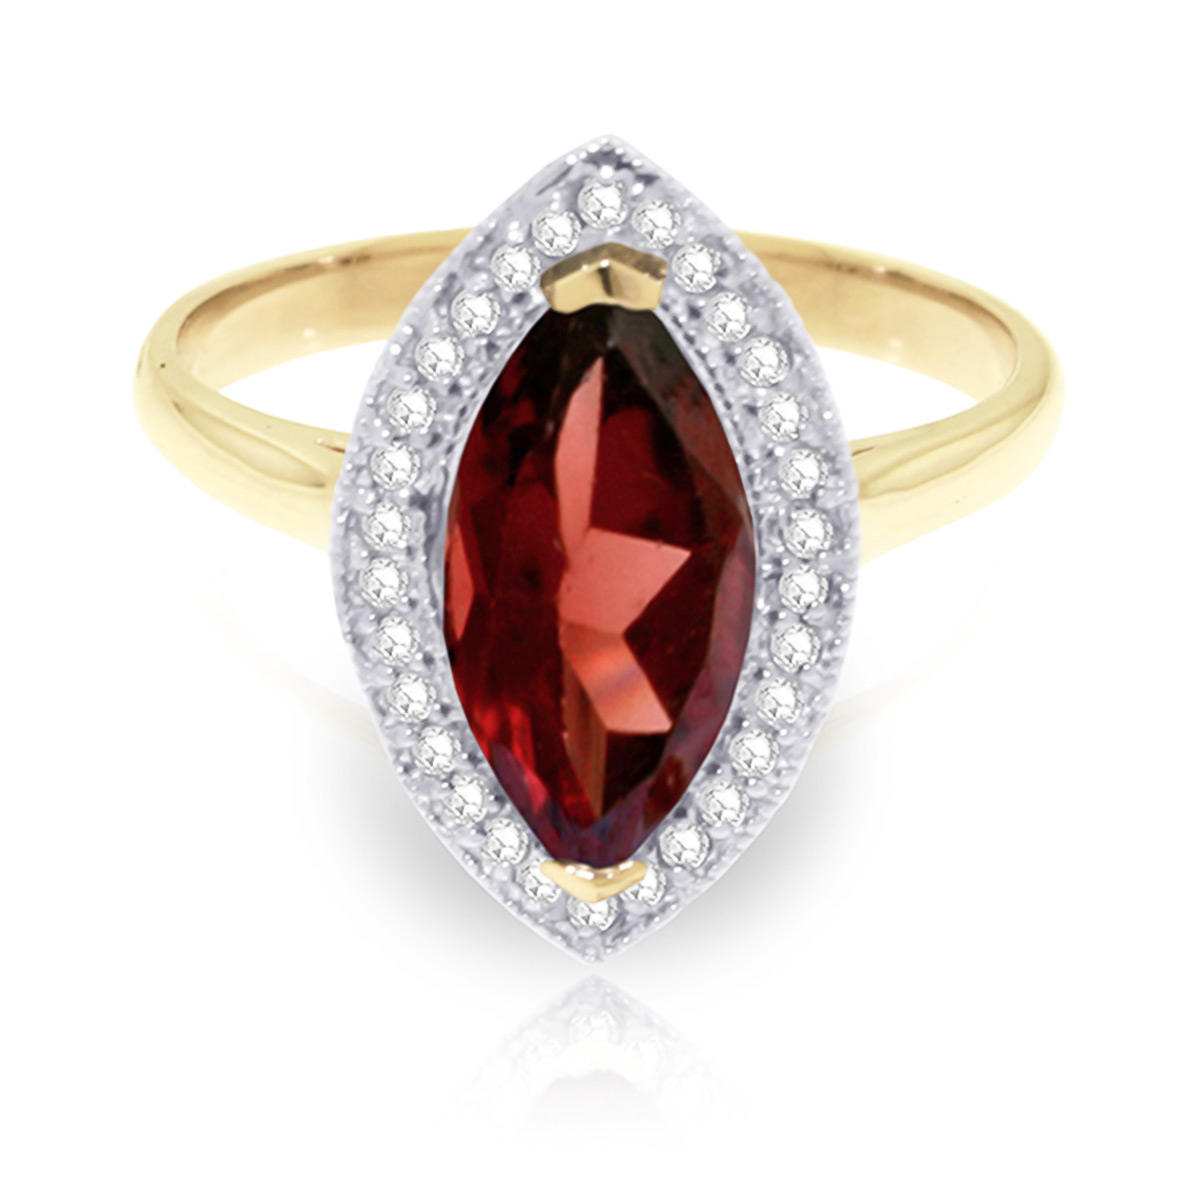 Garnet and Diamond Halo Ring 2.0ct in 9ct Gold